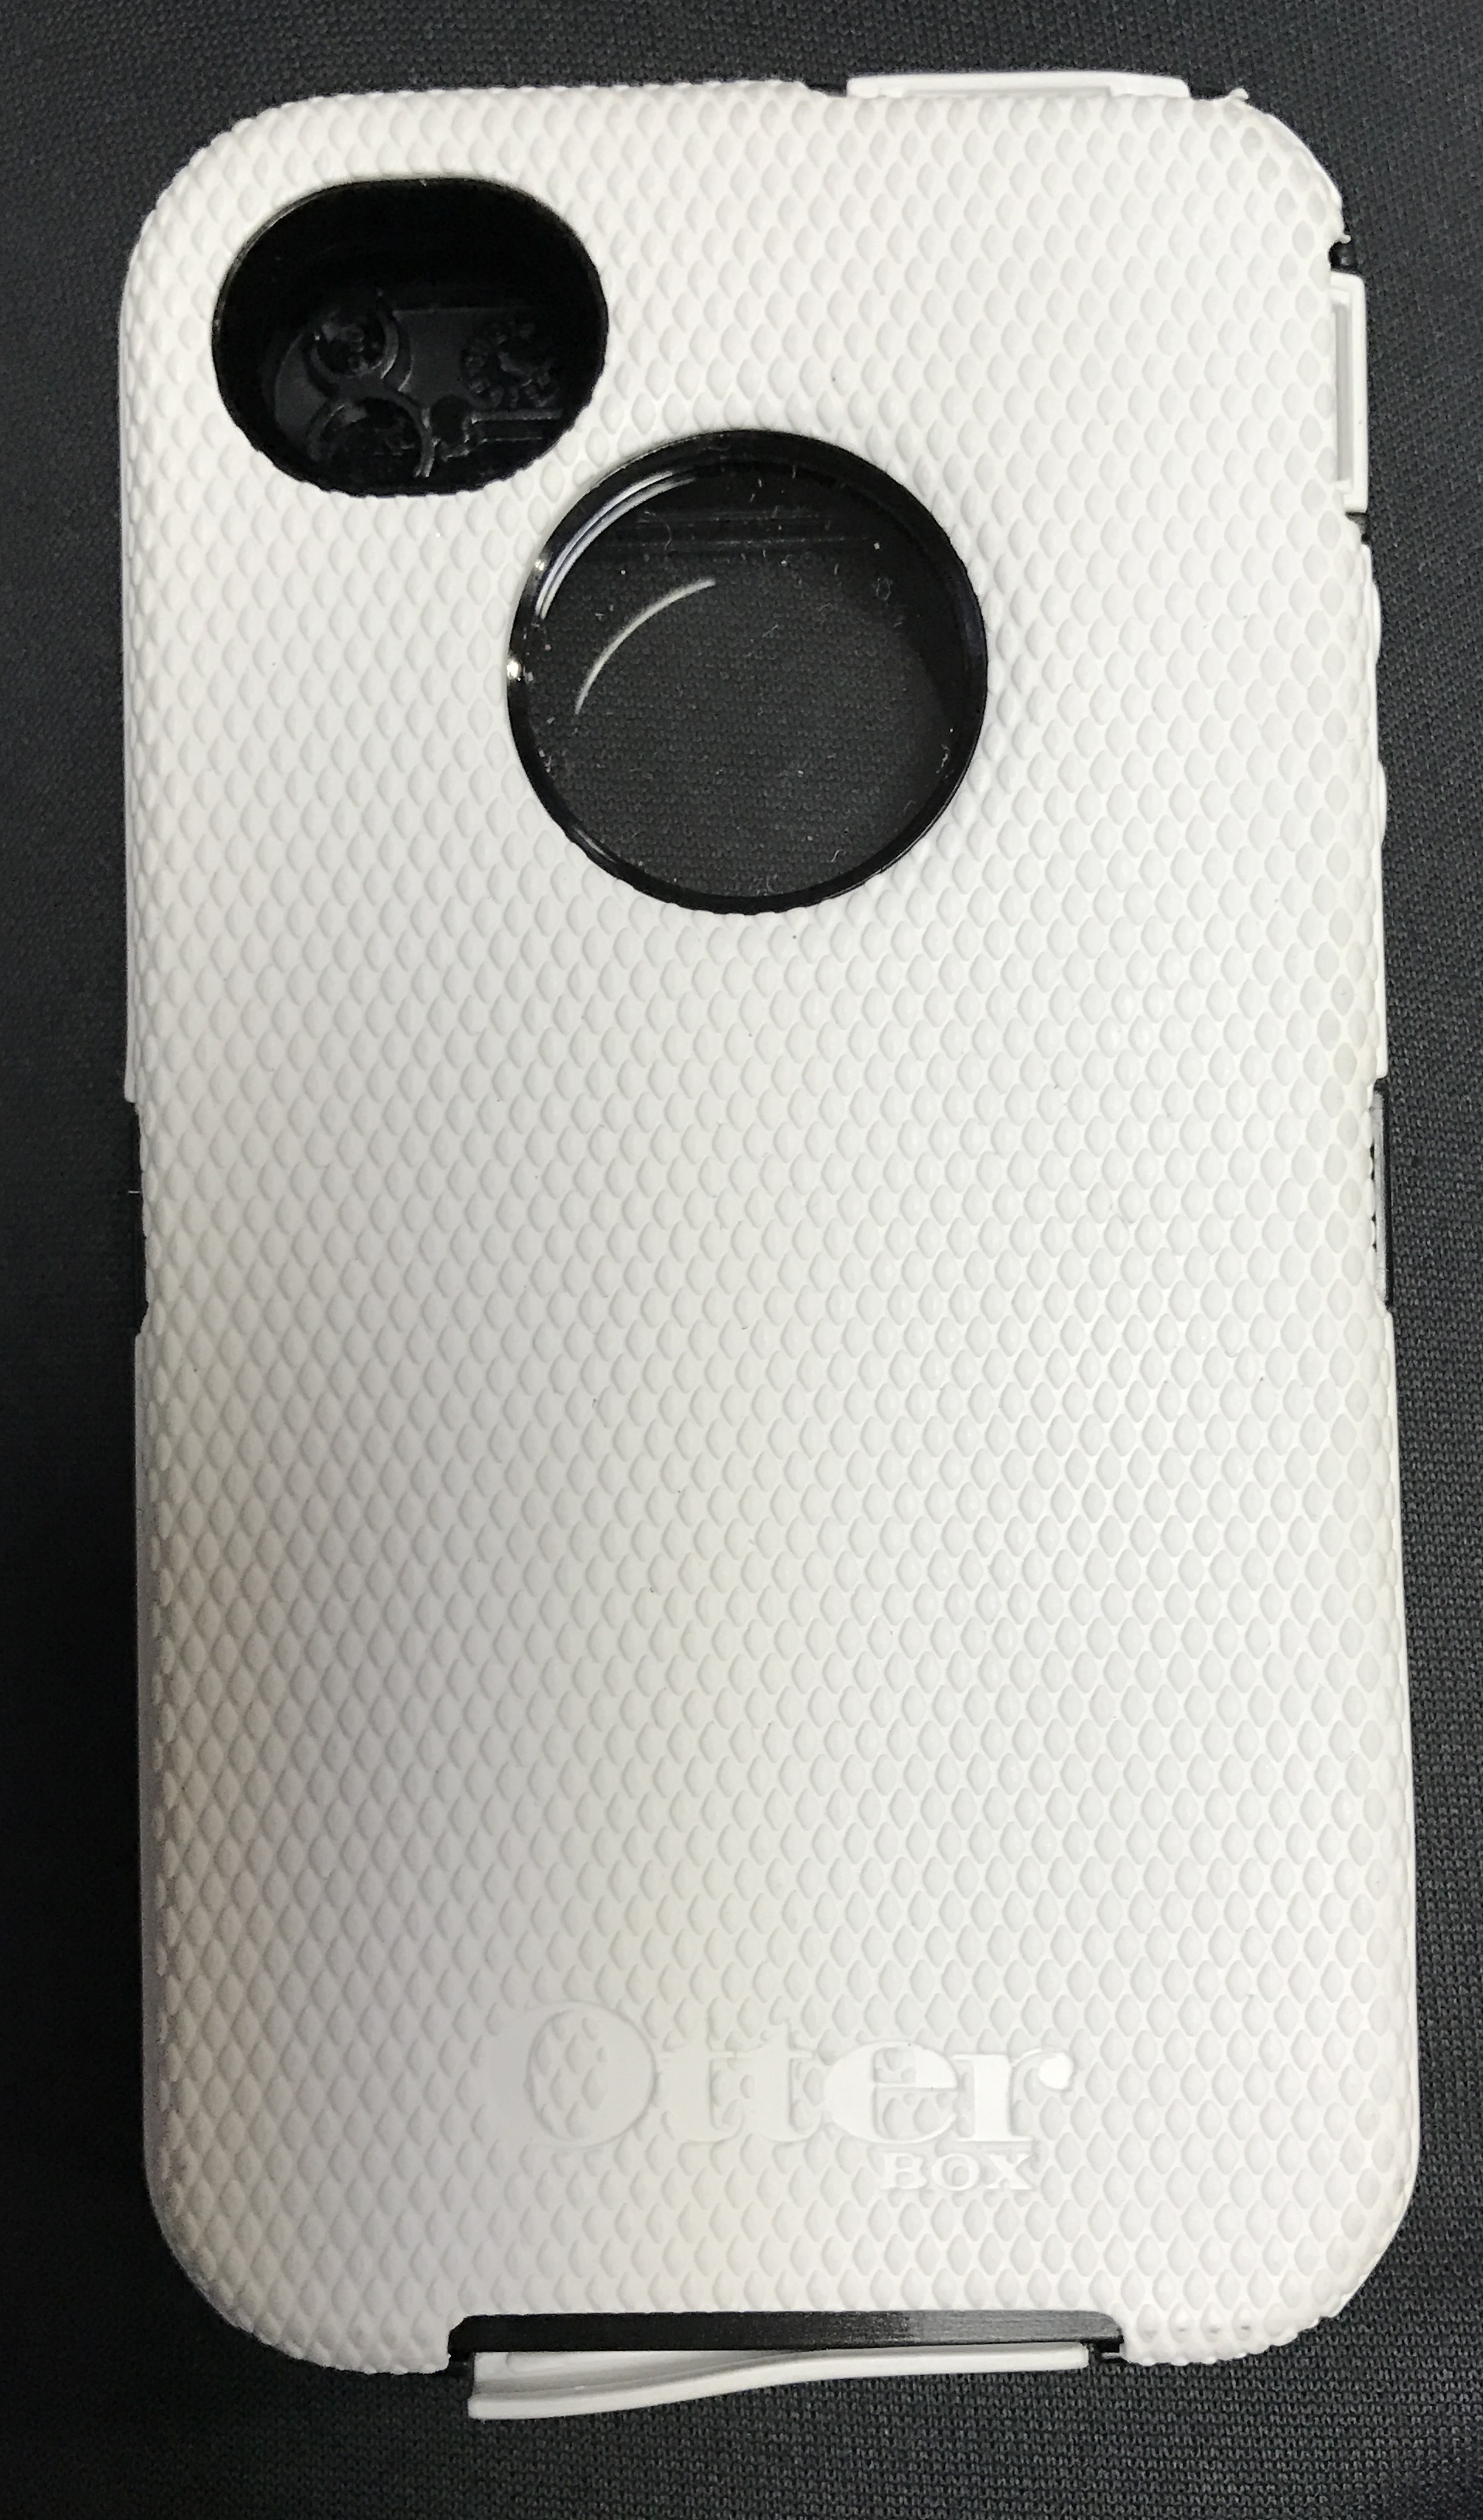 Apple iPhone 4 OtterBox Defender Case White & Black